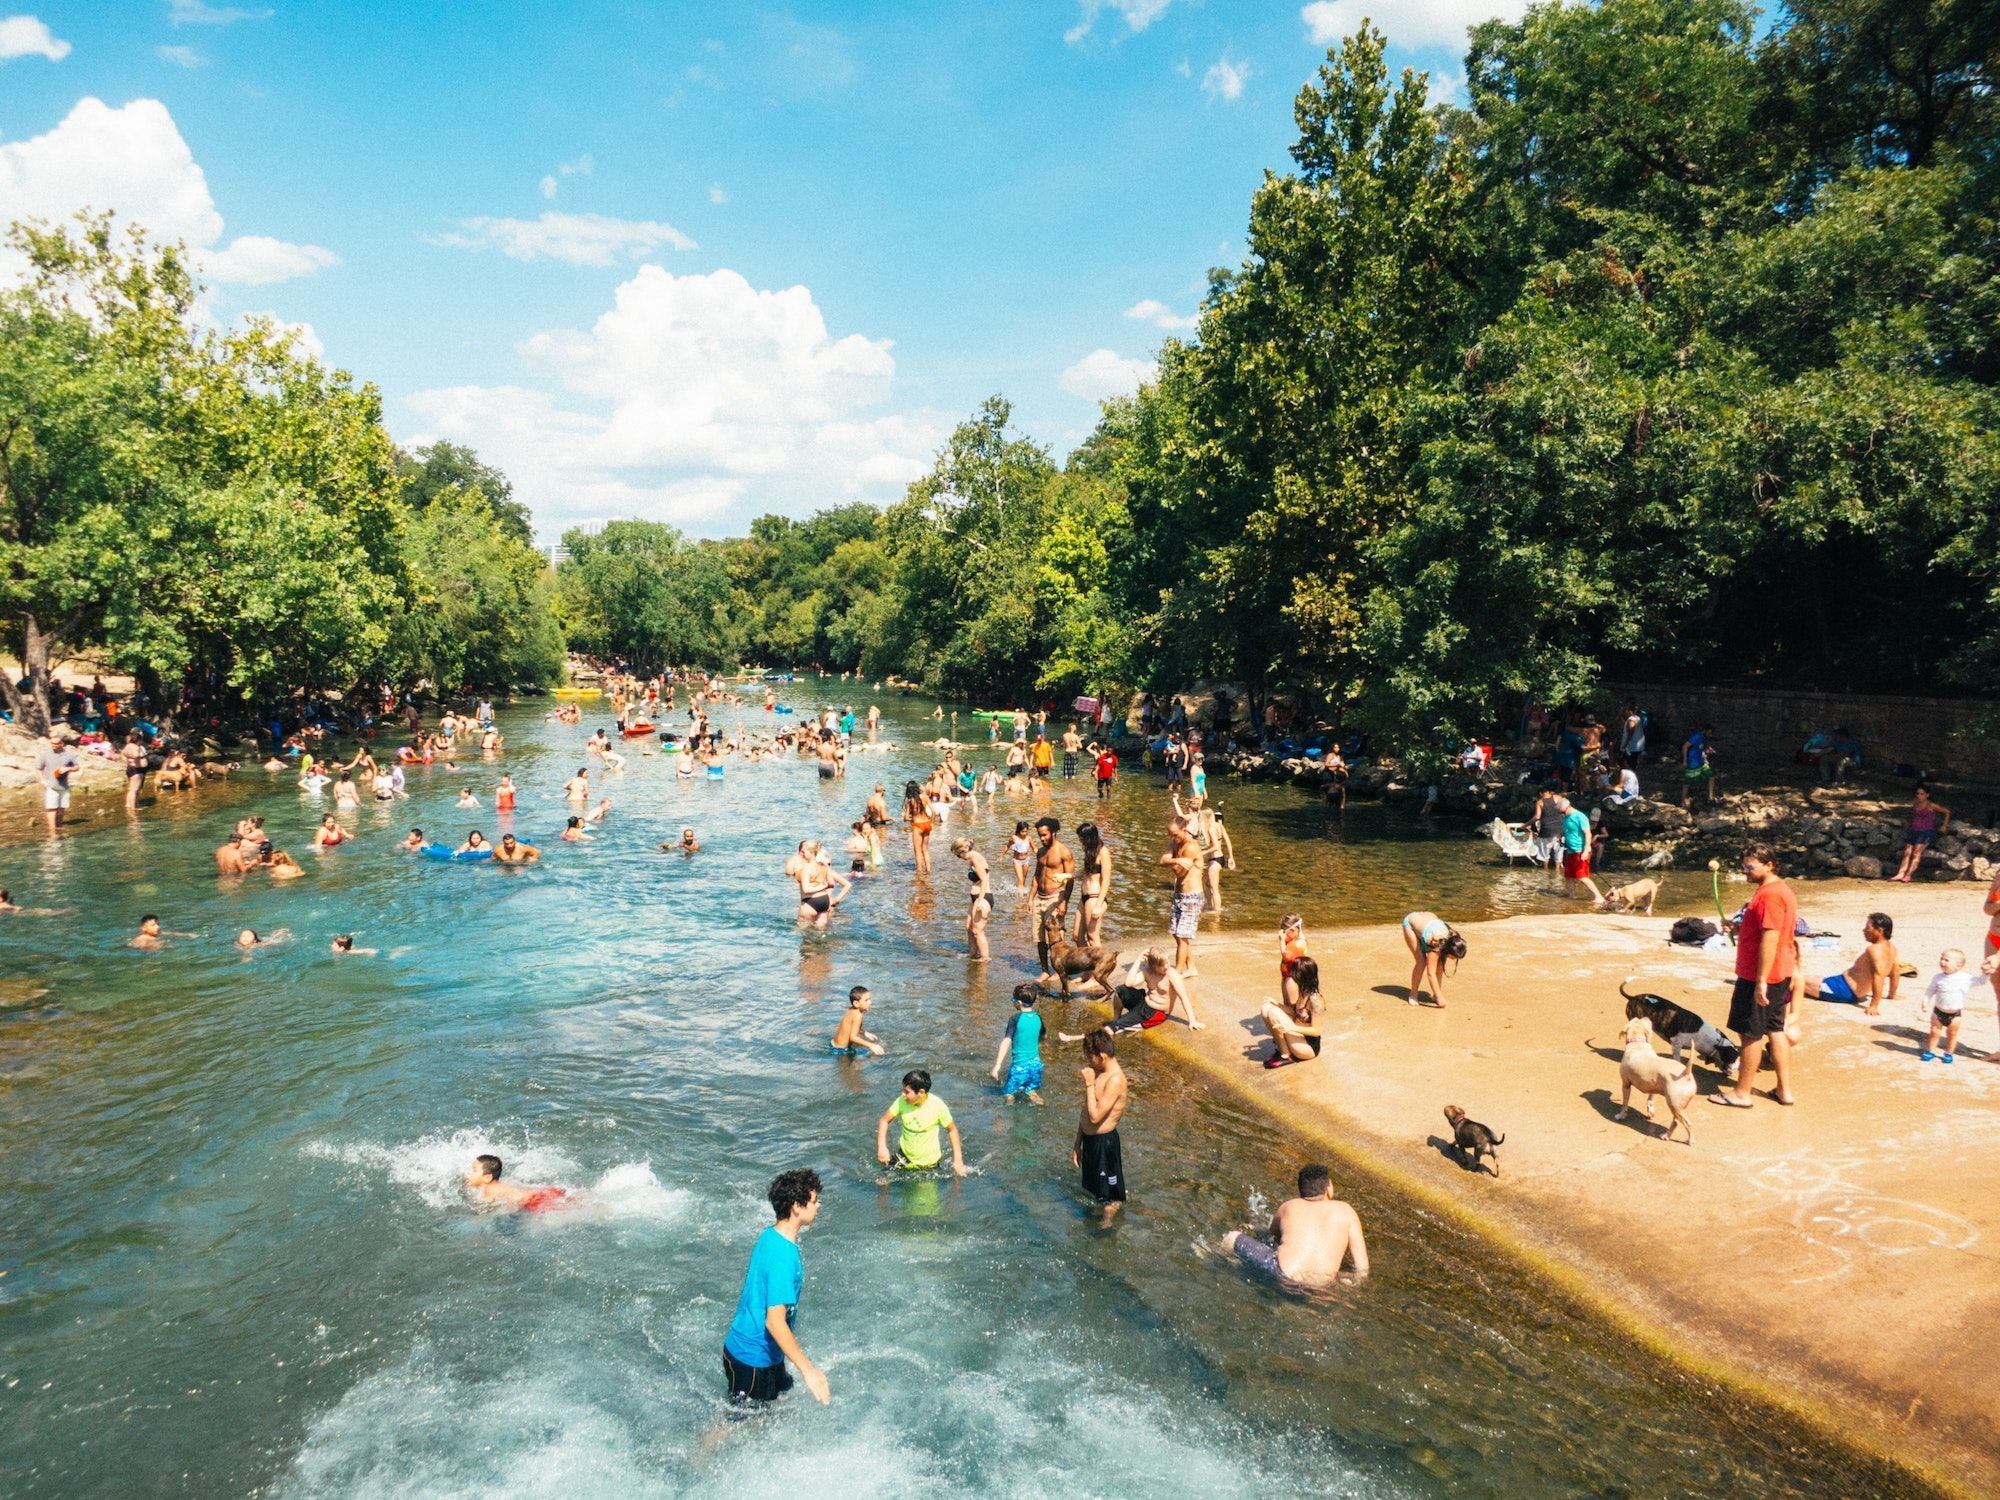 Many families and groups playing in crowded river_austin texas_best corporate retreat destinations_flok